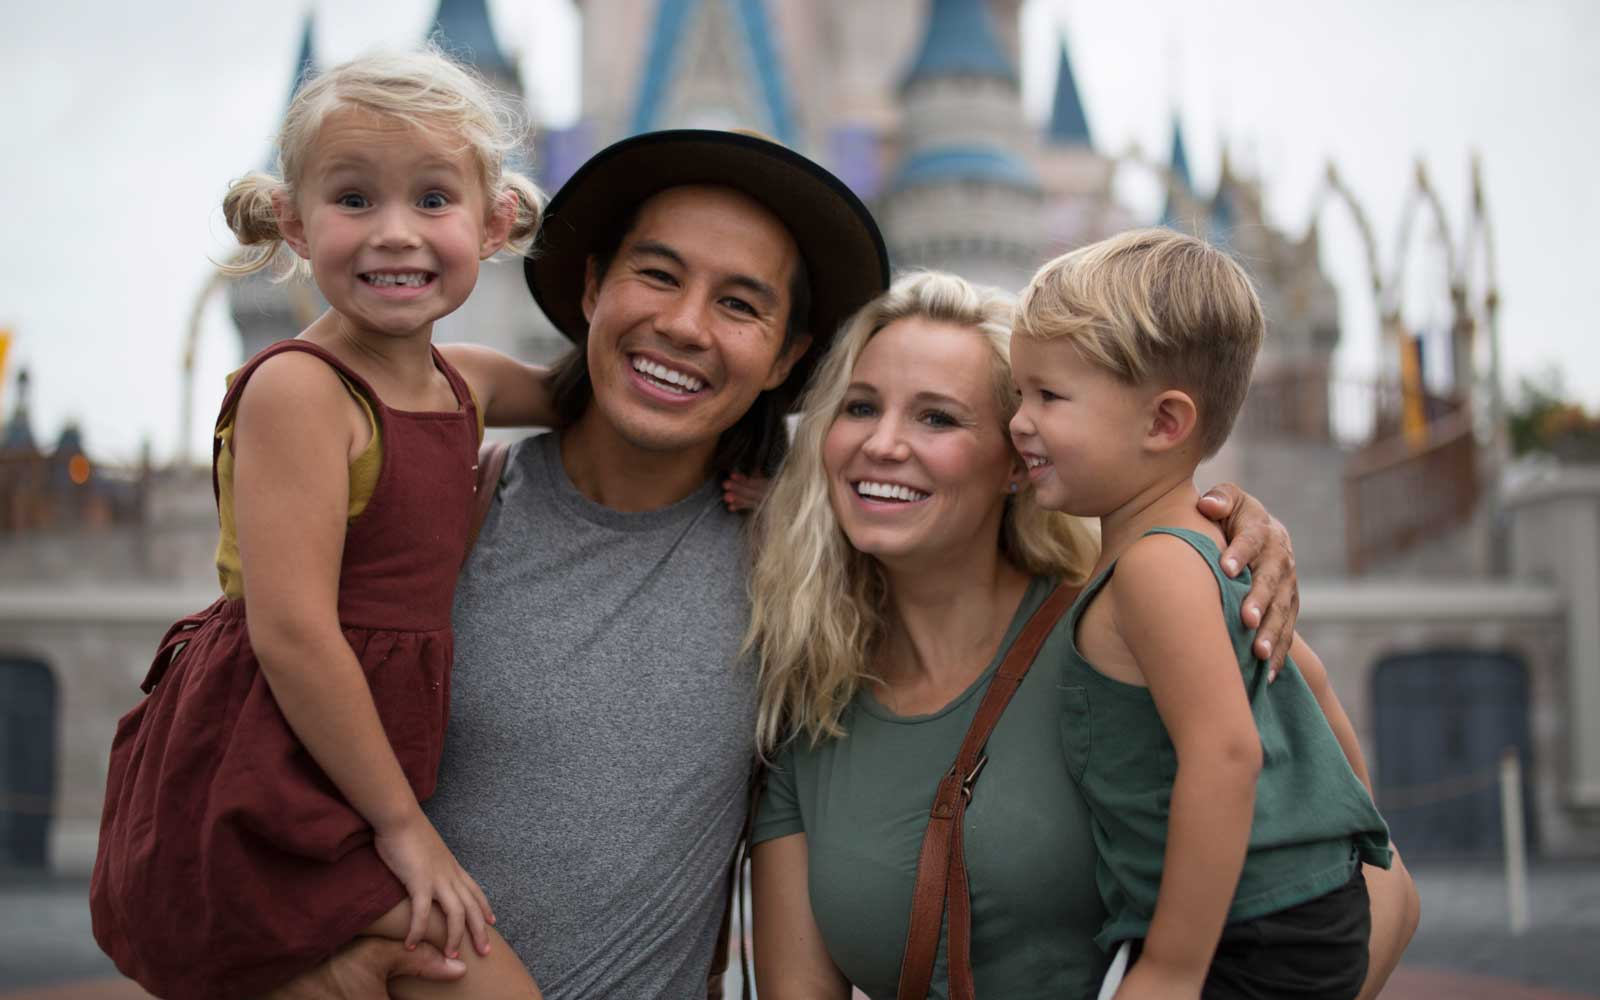 Family at Cinderella's Castle